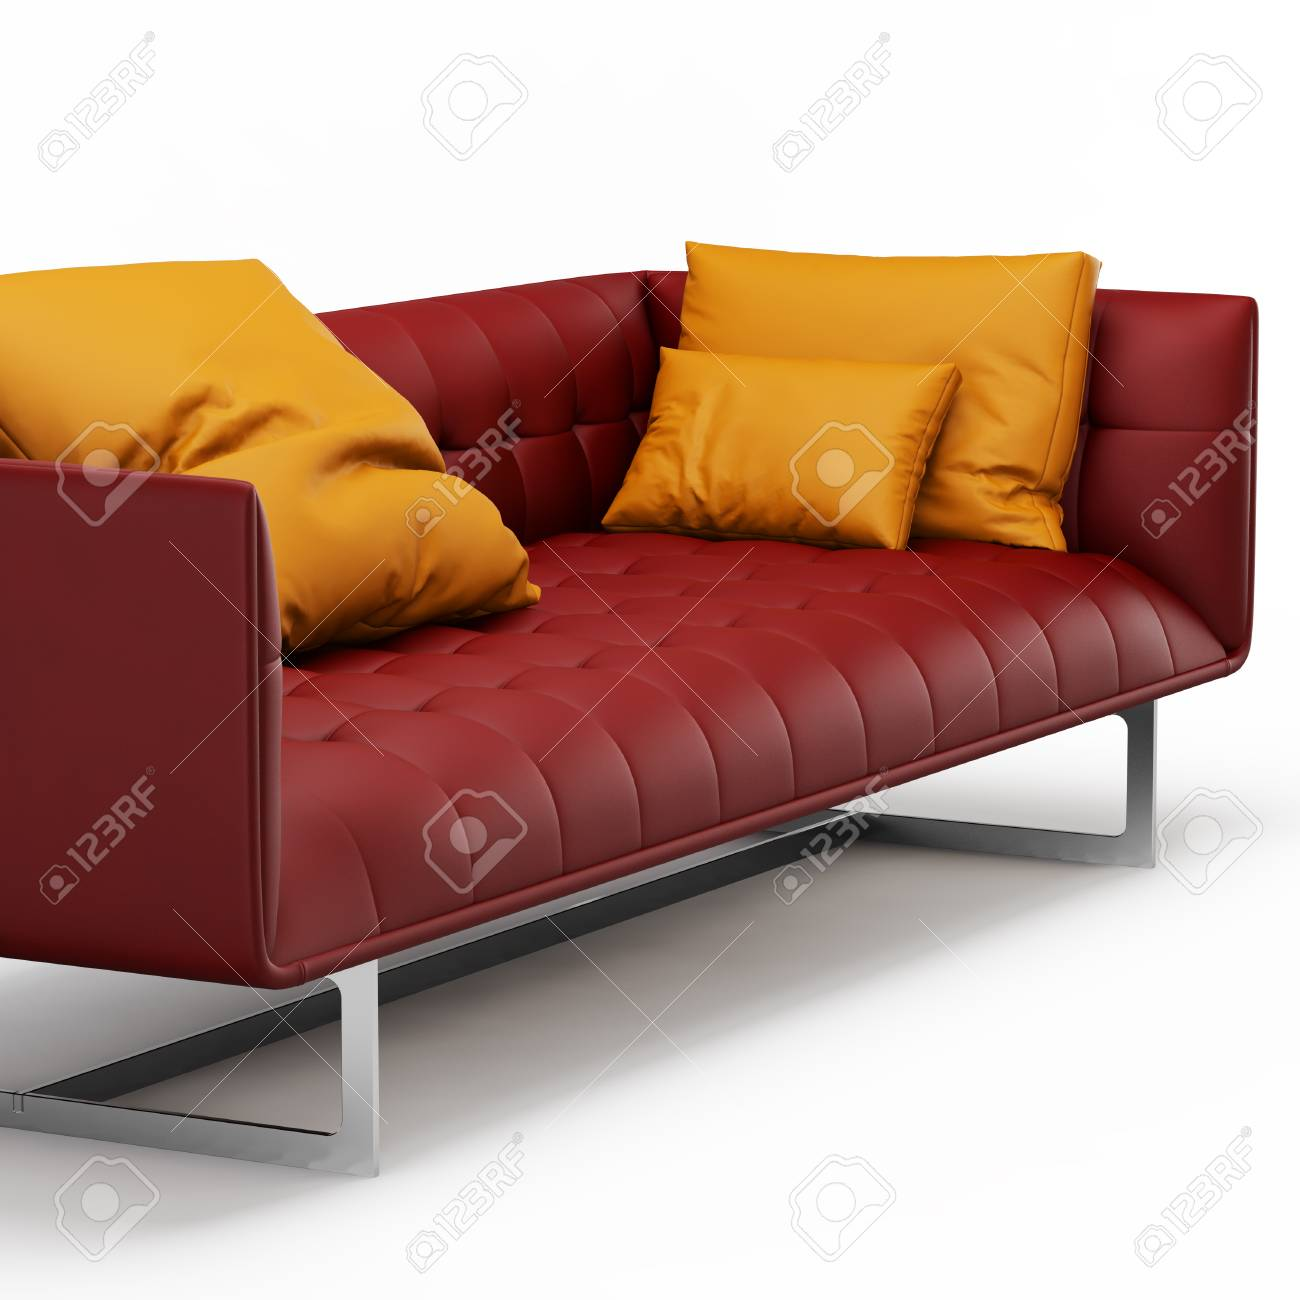 Red leather sofa with orange pillows on a white background 3d..